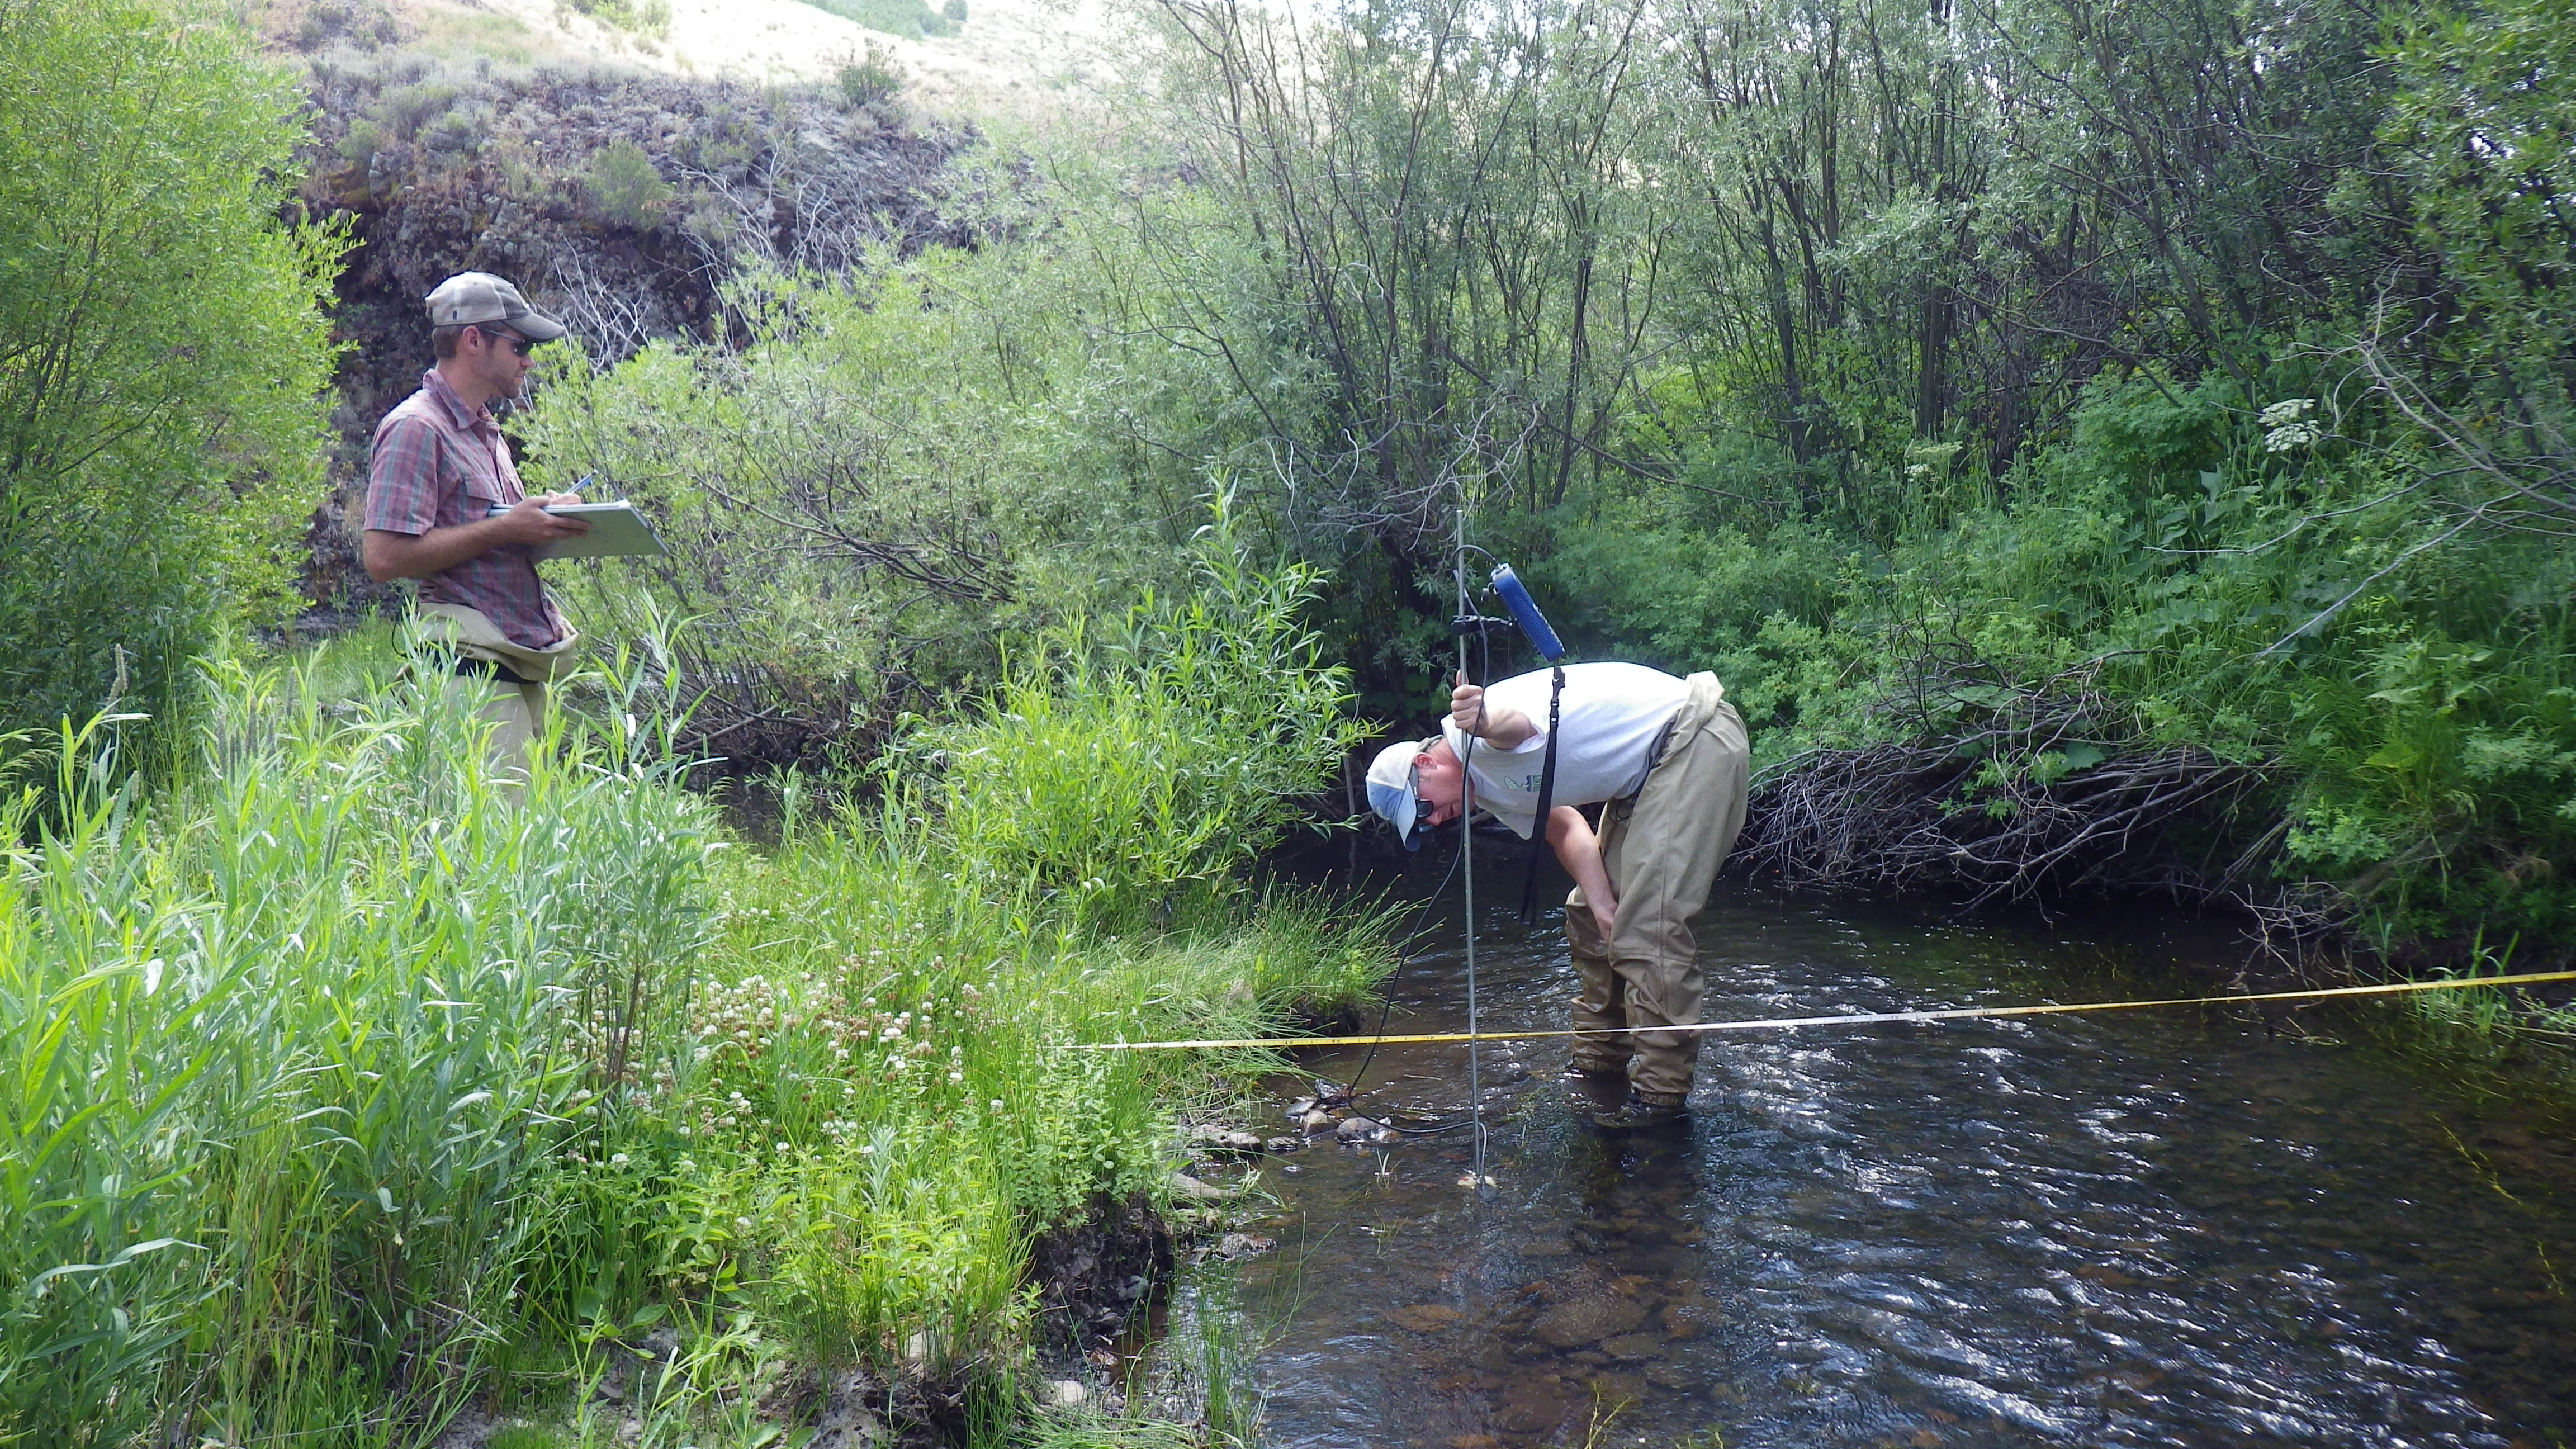 Measuring streamflows and other habitat characteristics in Goose Creek, Idaho.